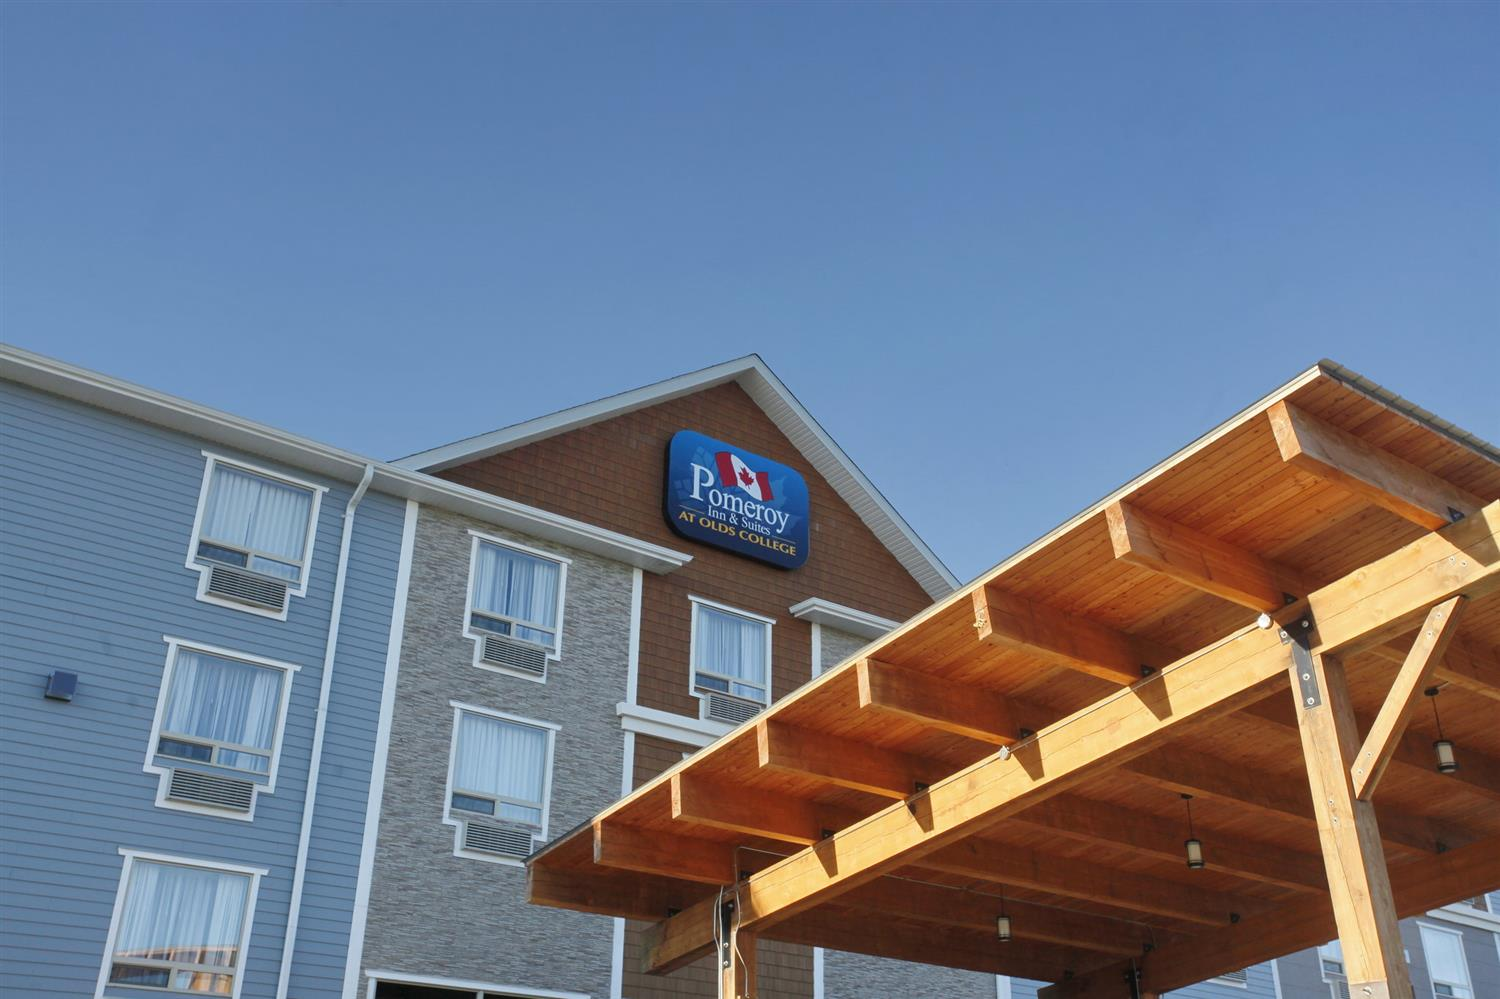 Exterior view - Pomeroy Inn & Suites at Olds College